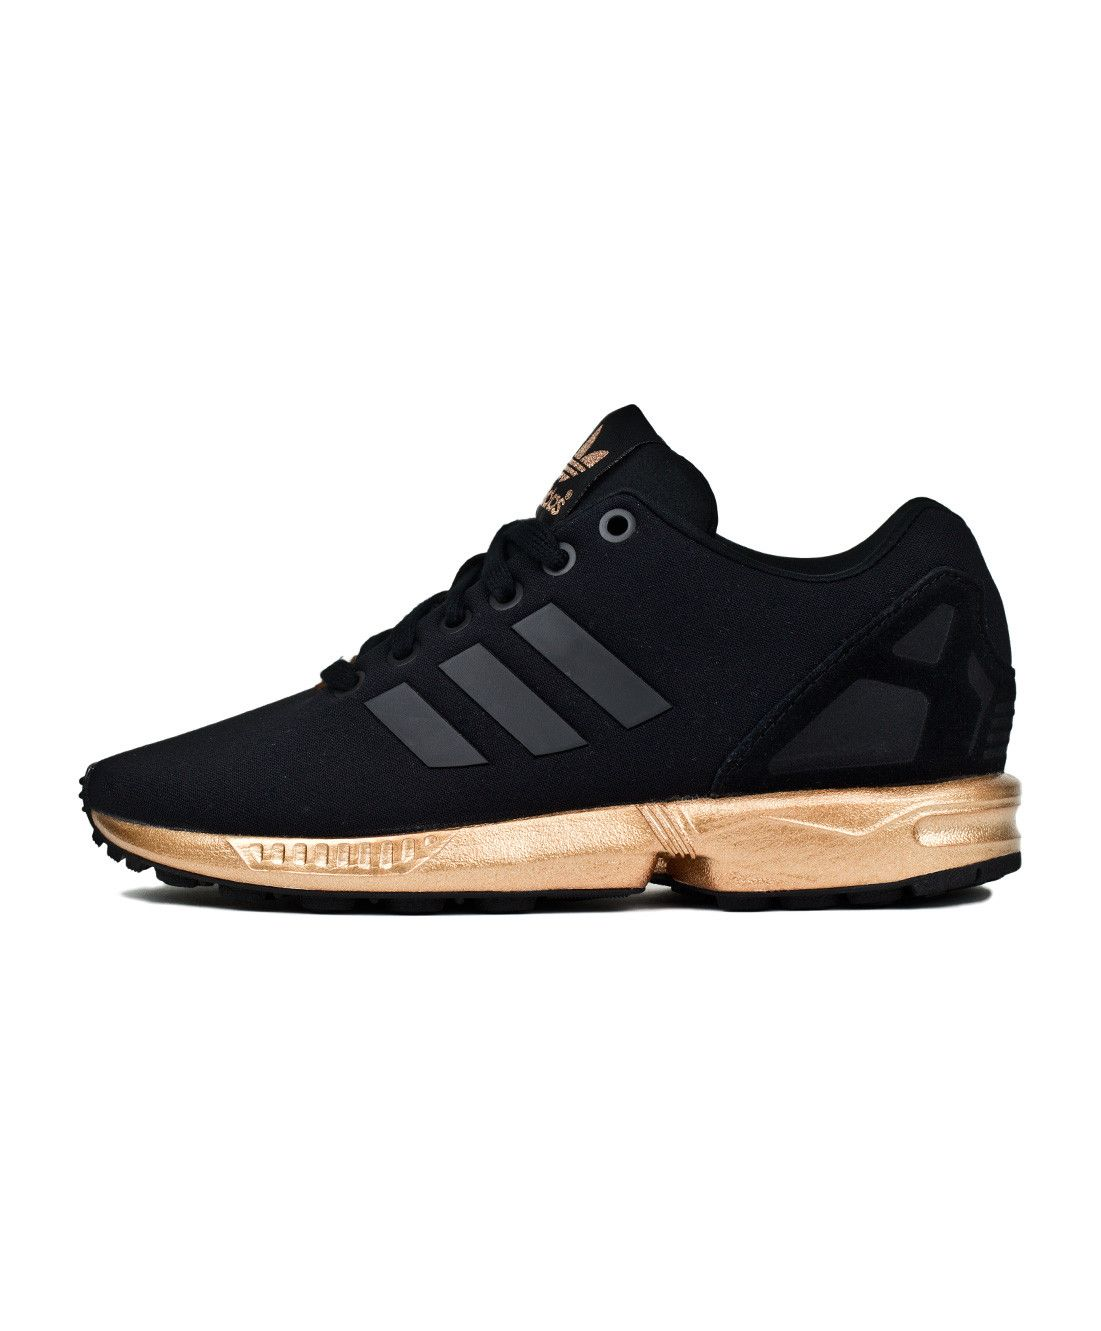 reputable site 3bb92 0b0d6 S78977, core black, black, adidas, women, womens, women s, ZX flux, zx flux,  flux, gold, copper